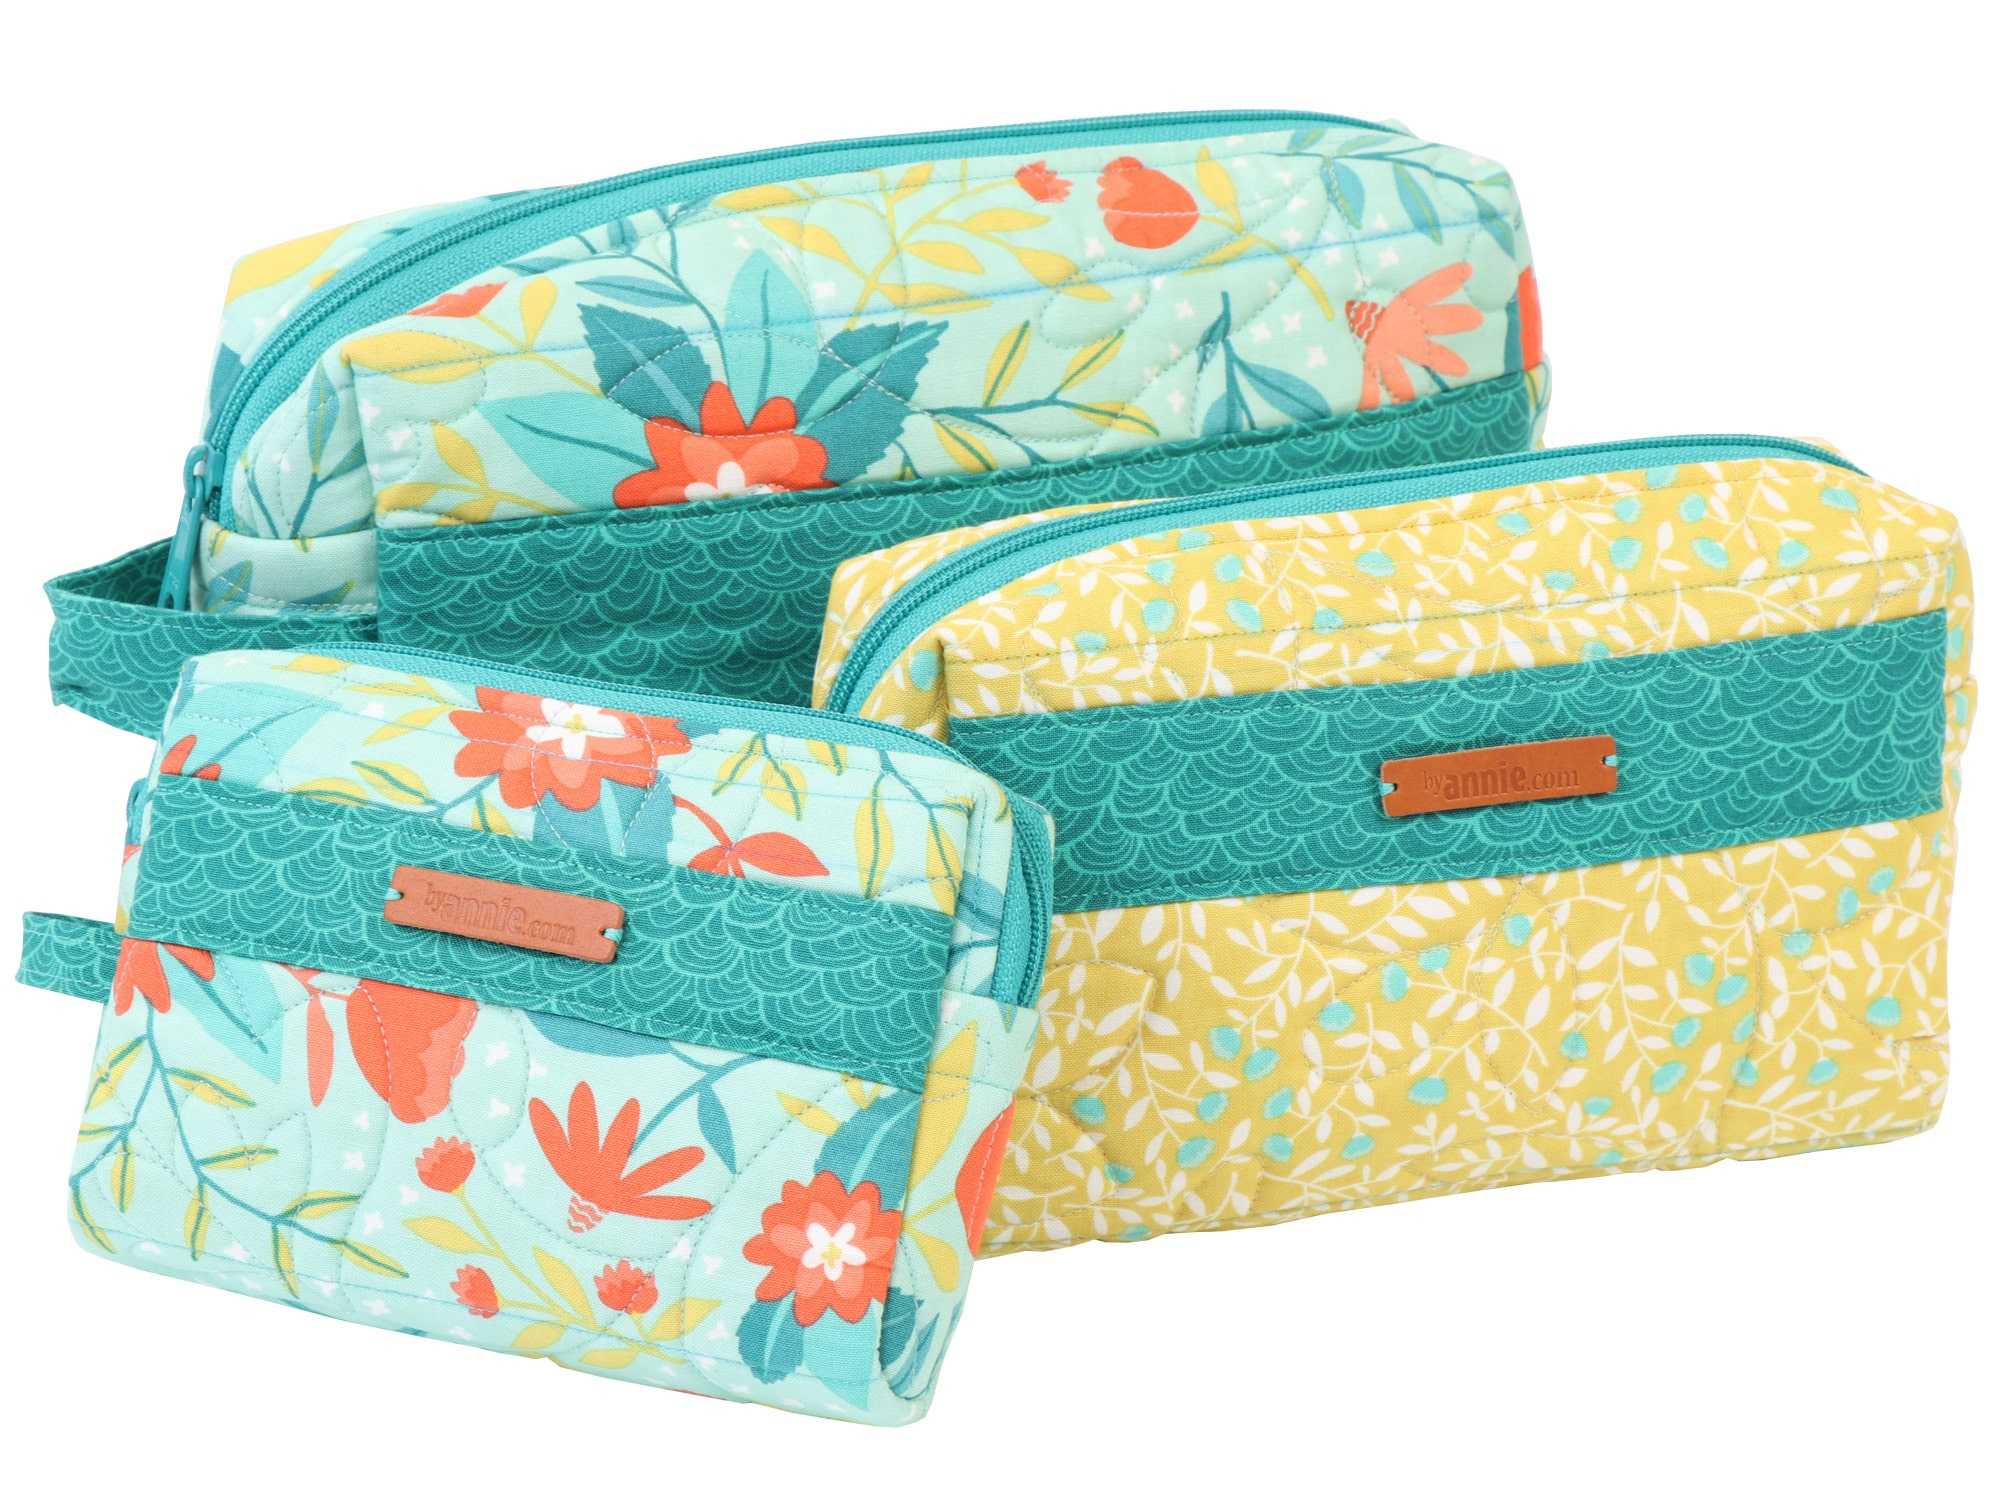 DITTY BAGS 10/23 10AM-4PM - Authorized Vac & Sew